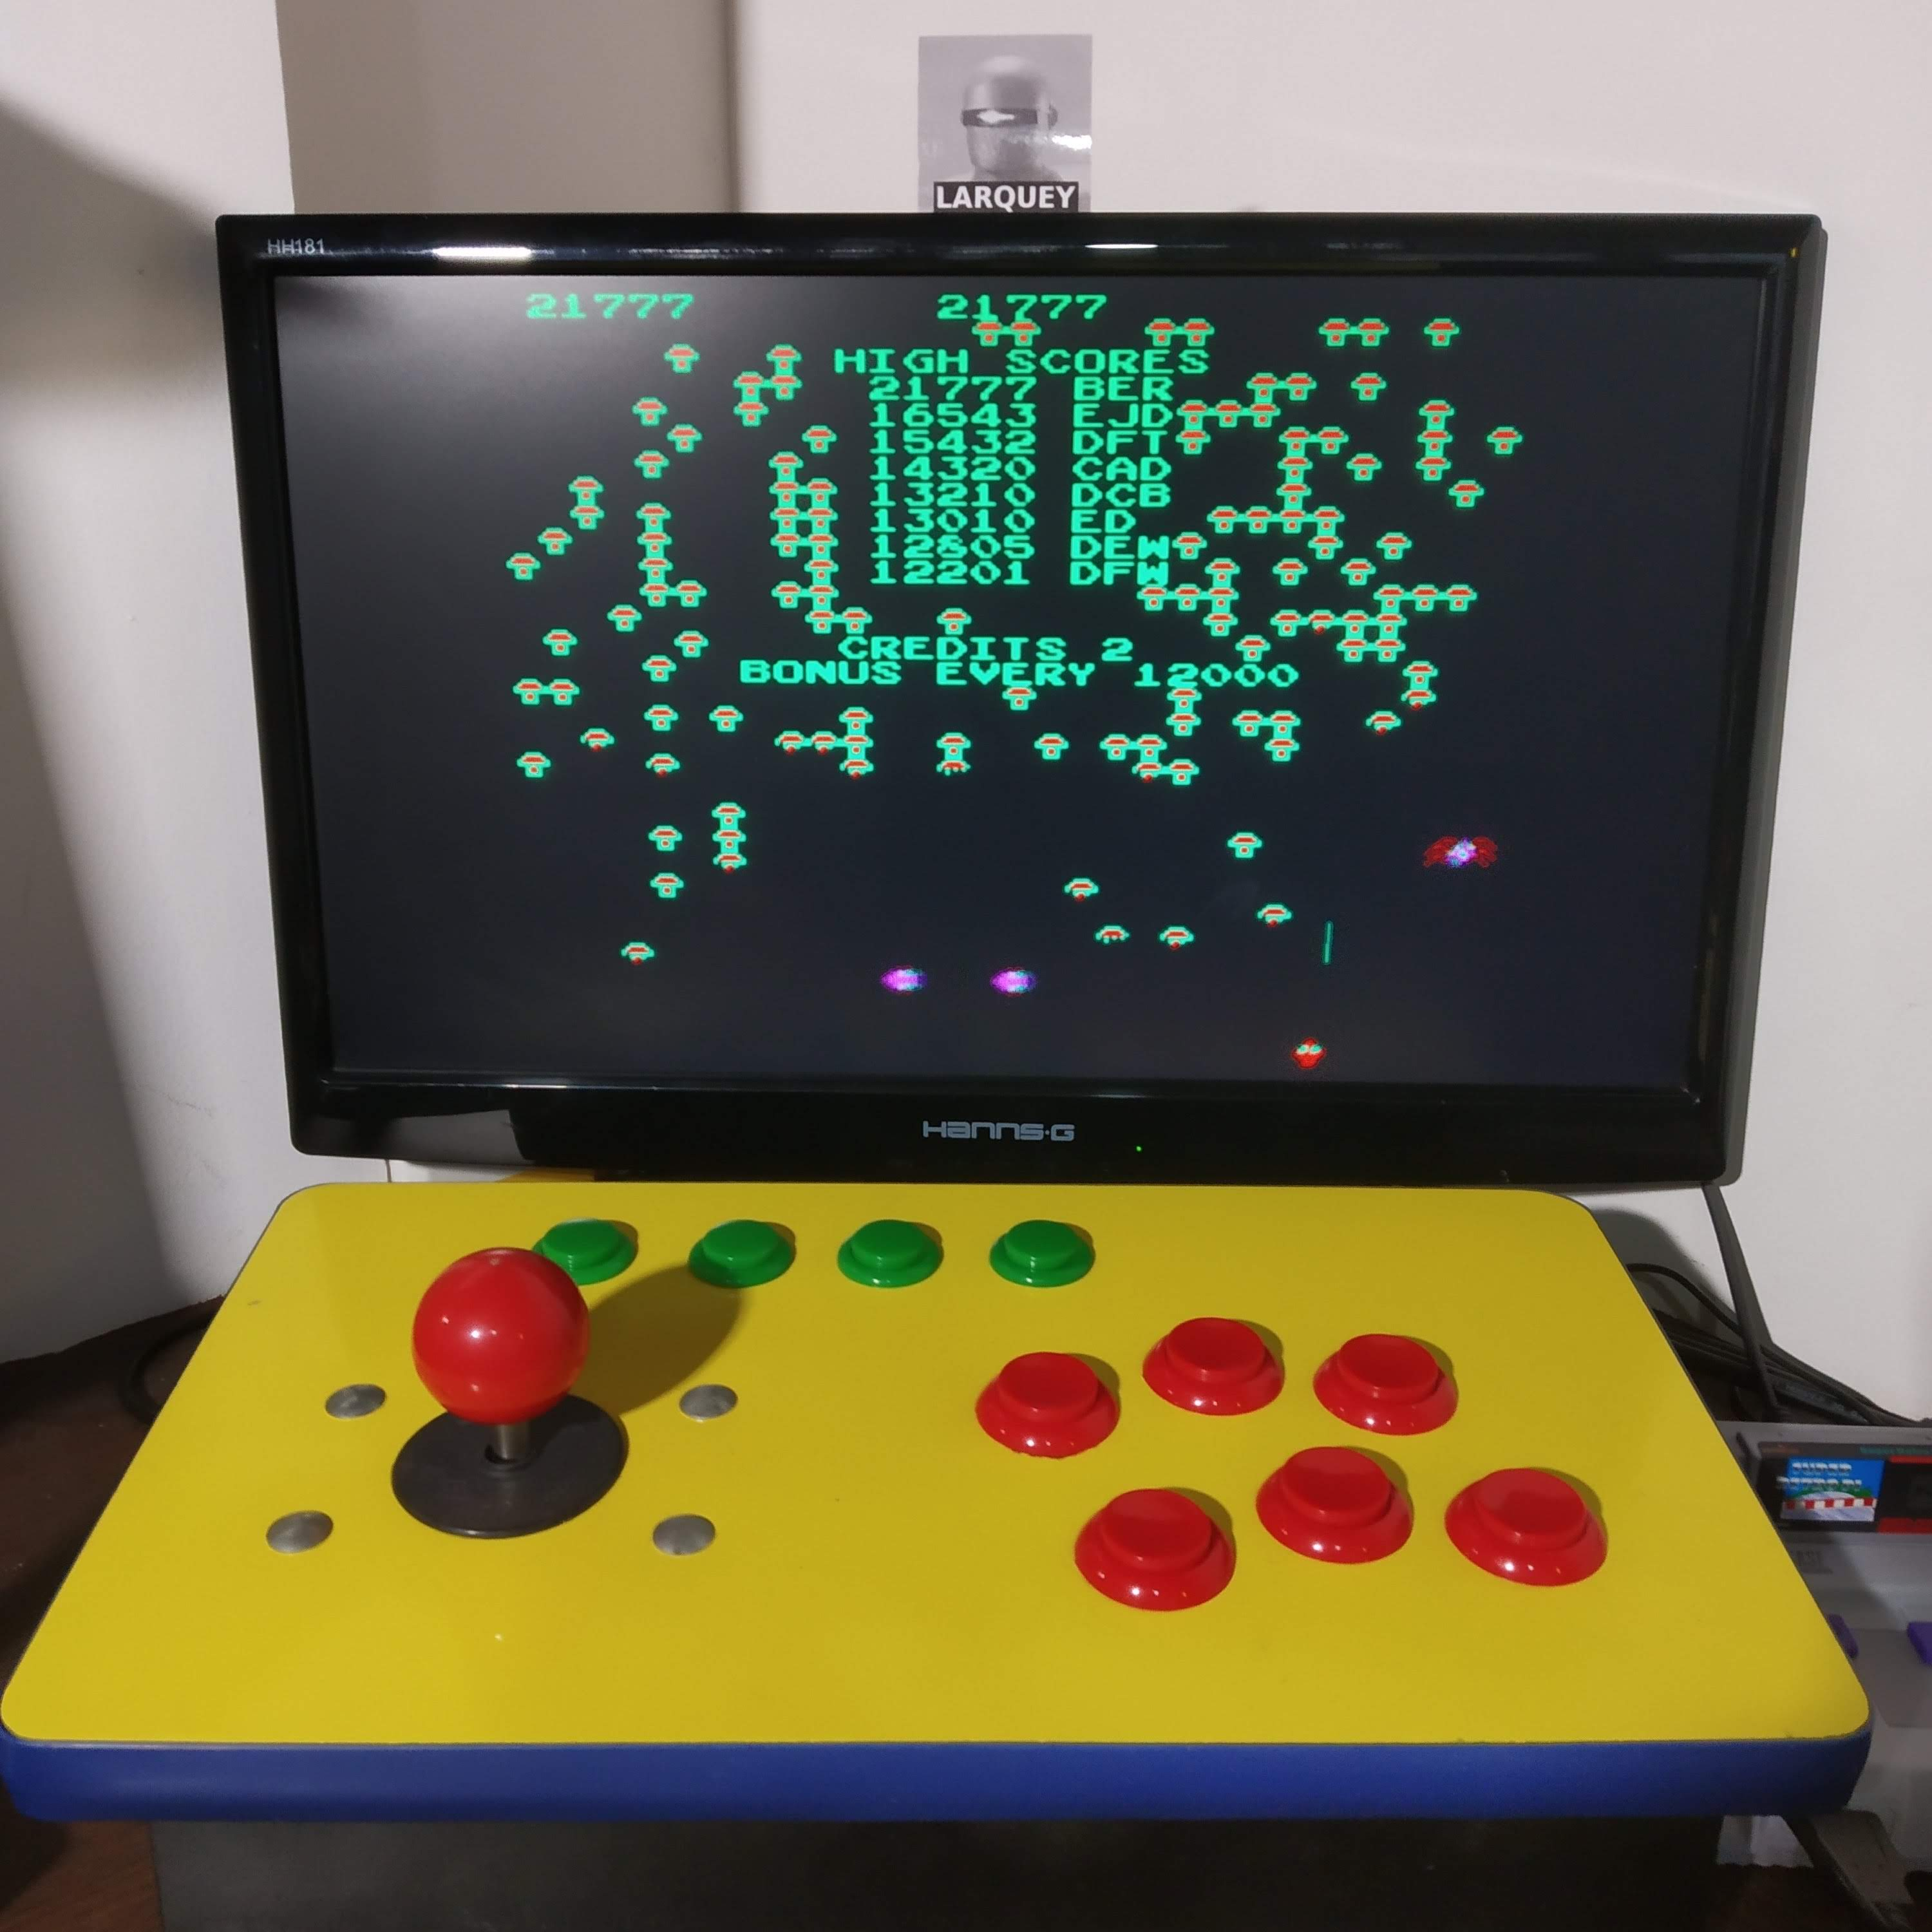 Larquey: Arcade`s Greatest Hits: The Atari Collection 1: Centipede (SNES/Super Famicom Emulated) 21,777 points on 2020-08-15 13:16:58